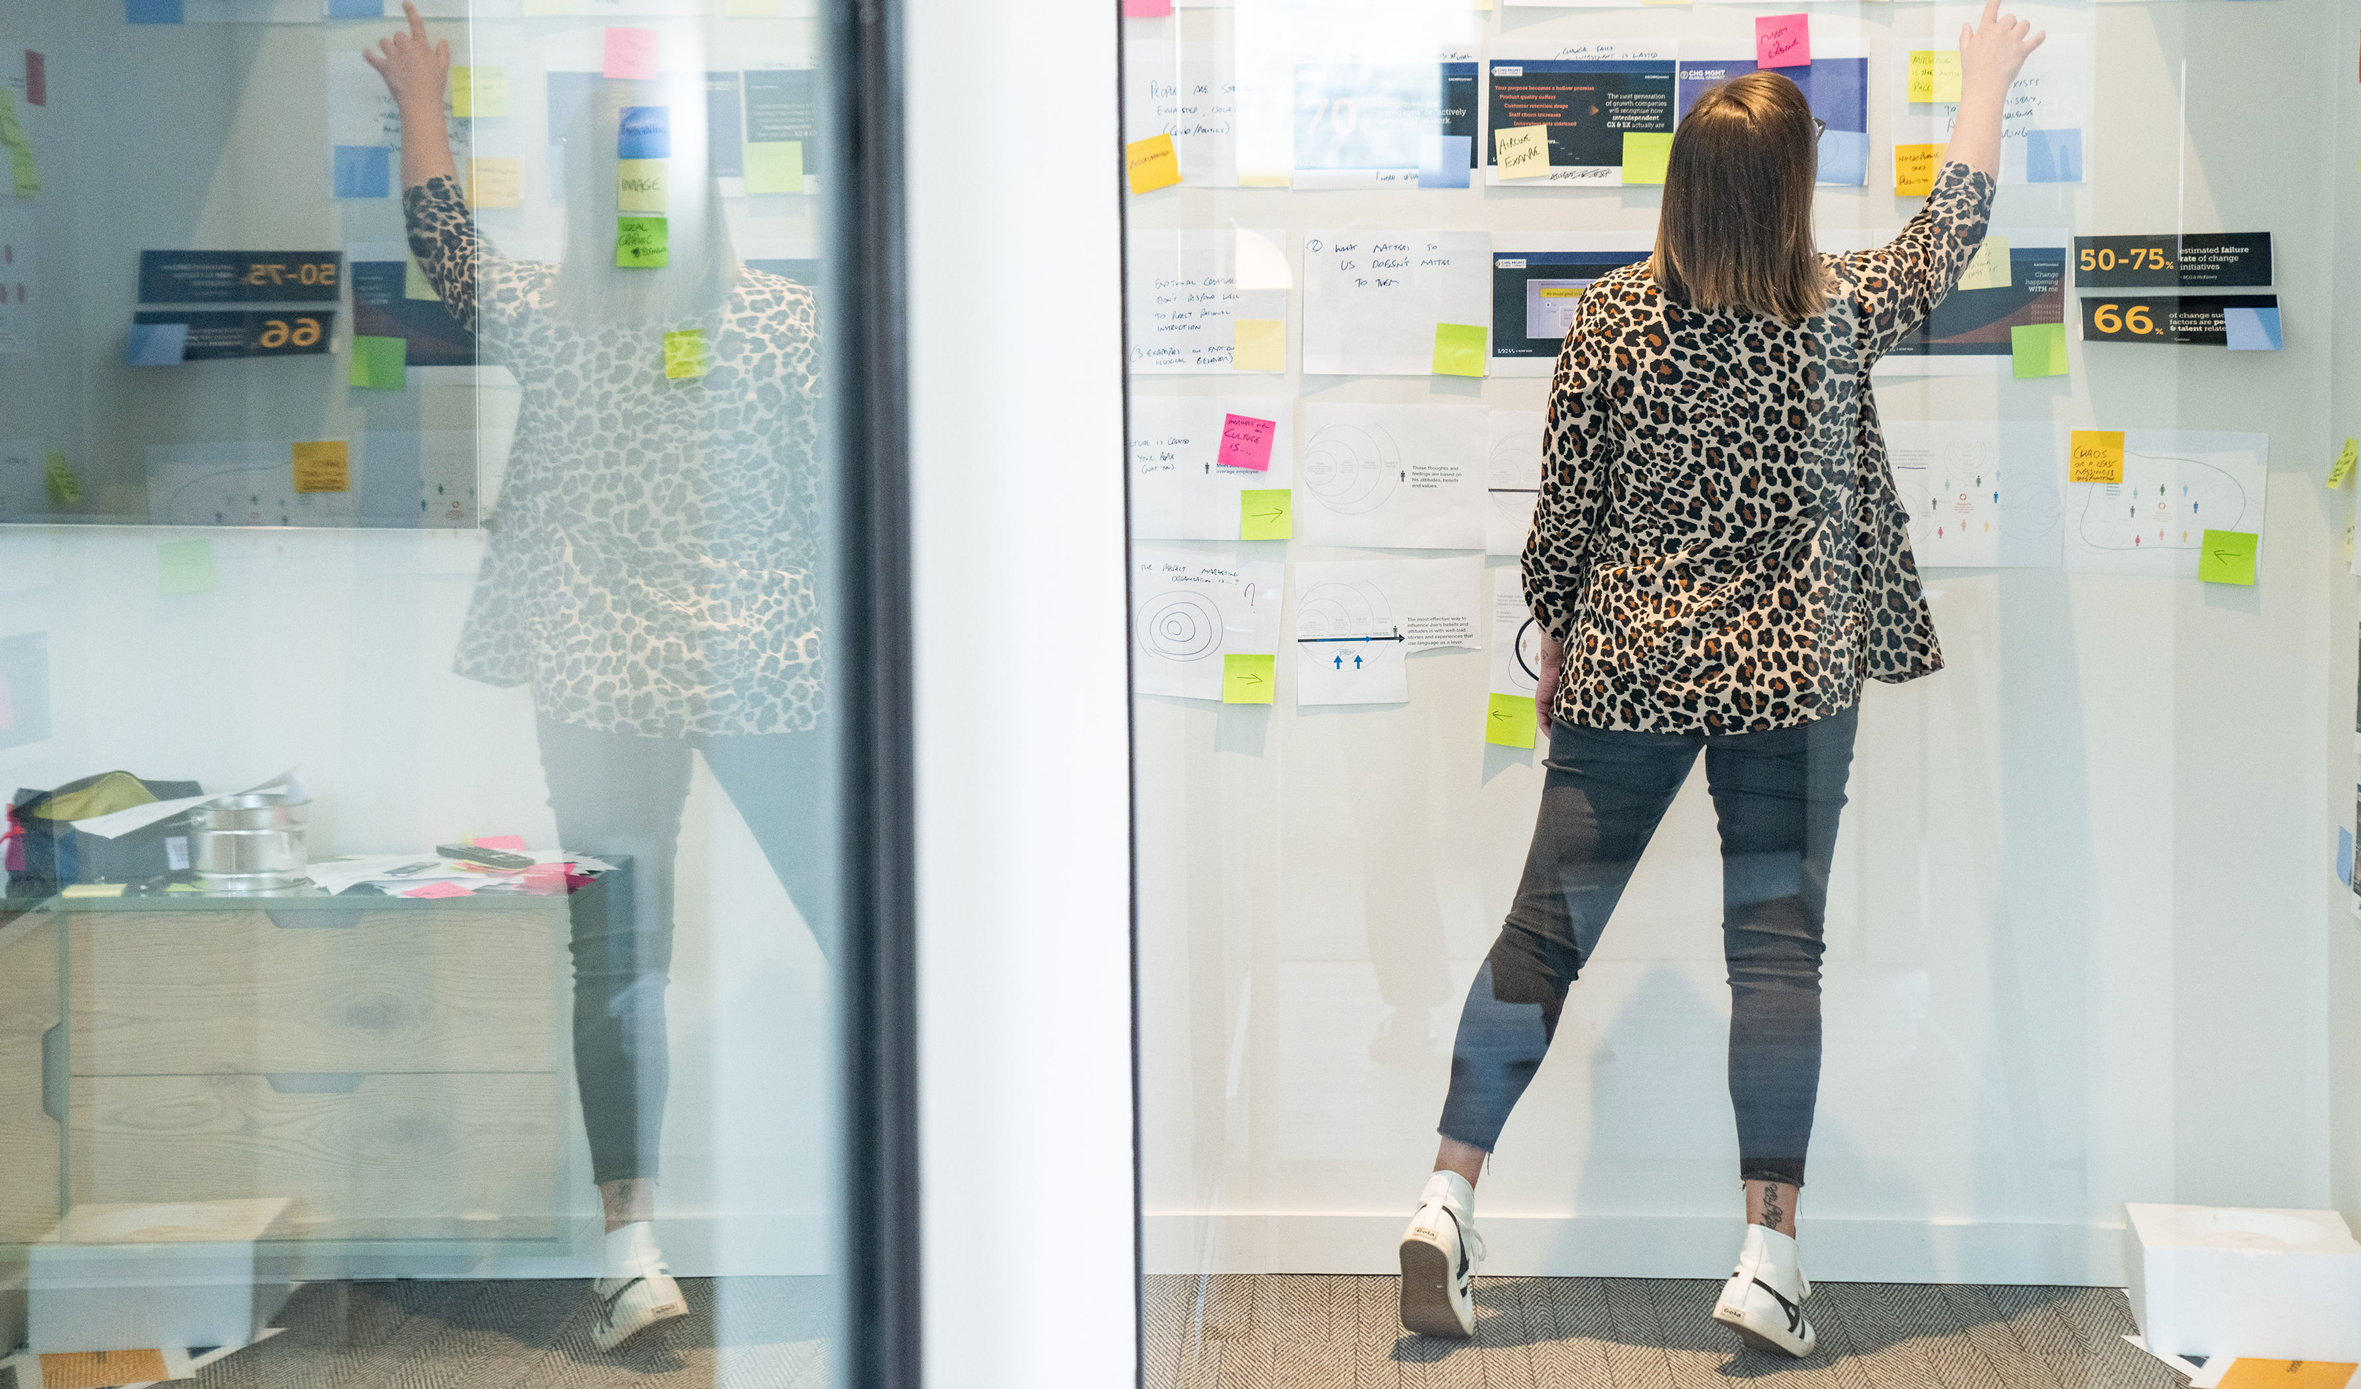 Lady in conference room points to sticky note on brainstorm wall covered in printouts and photos